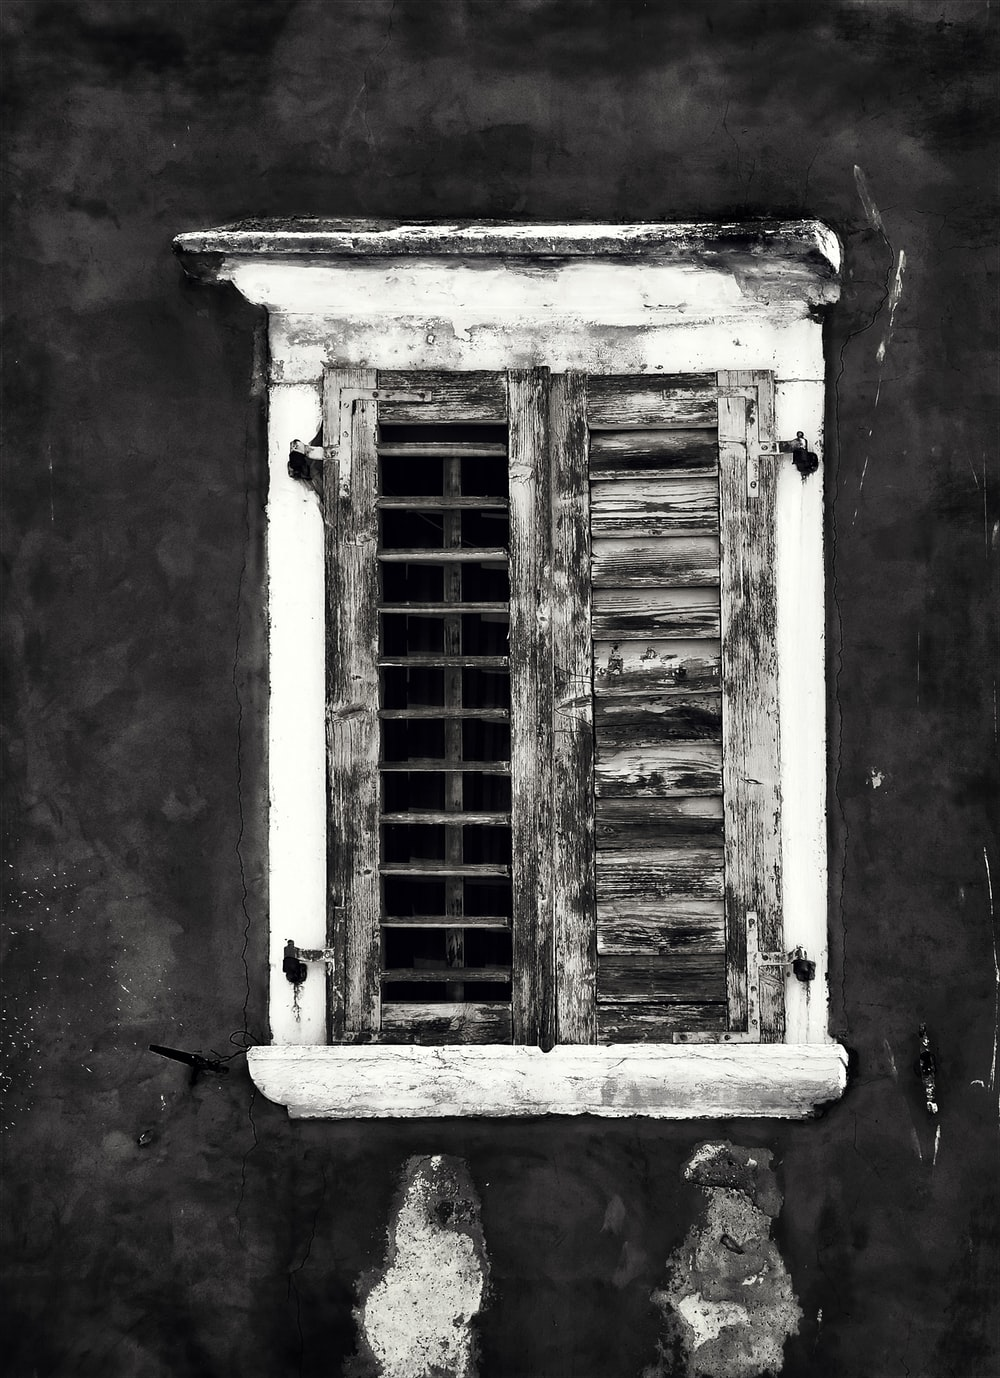 grayscale photography of opened window